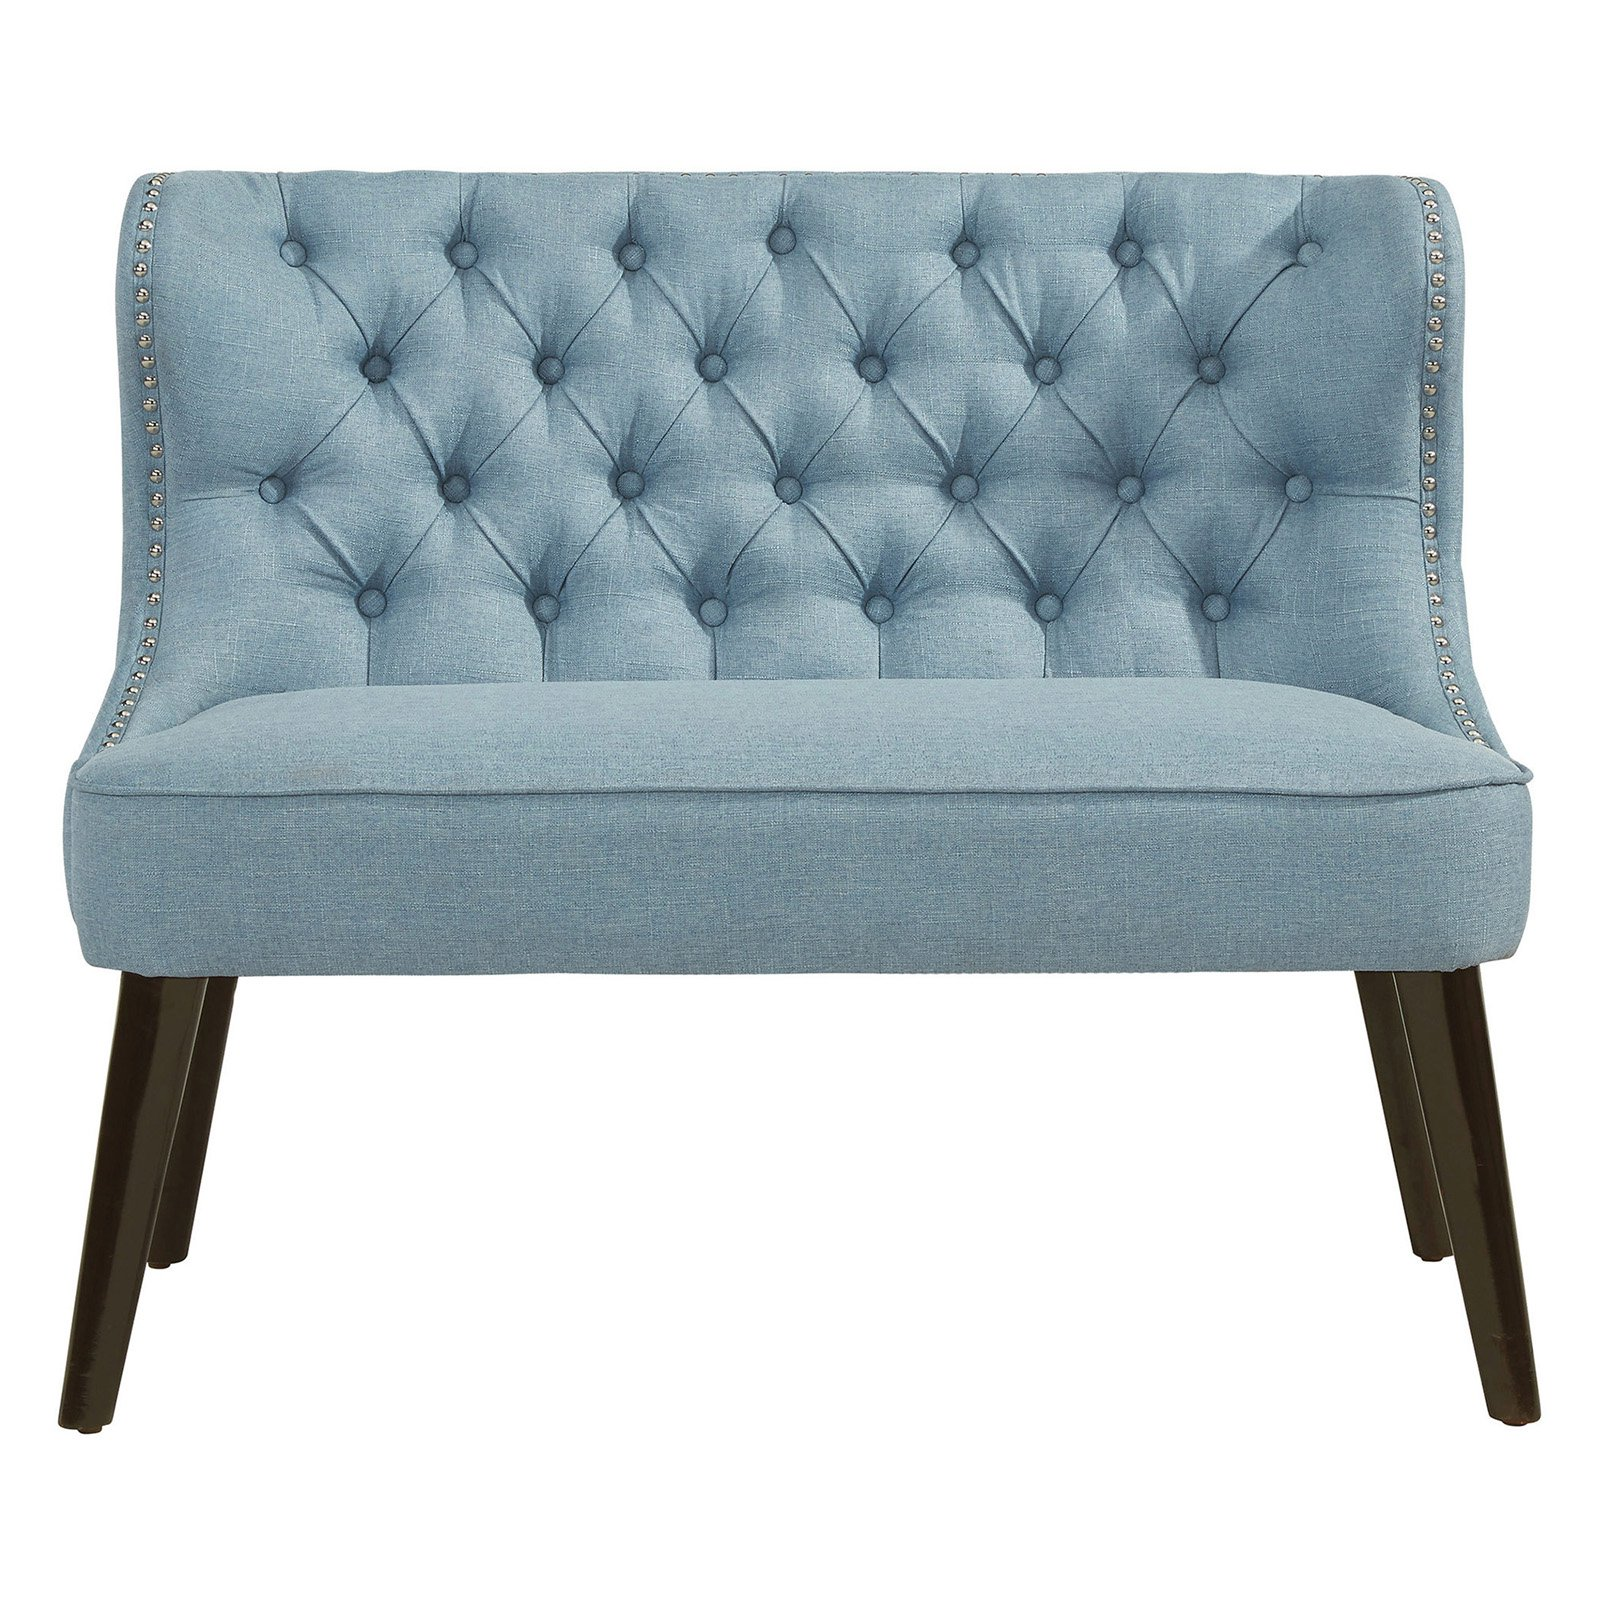 Nspire Fabric Button Tufted Settee Light Blue Furniture Love